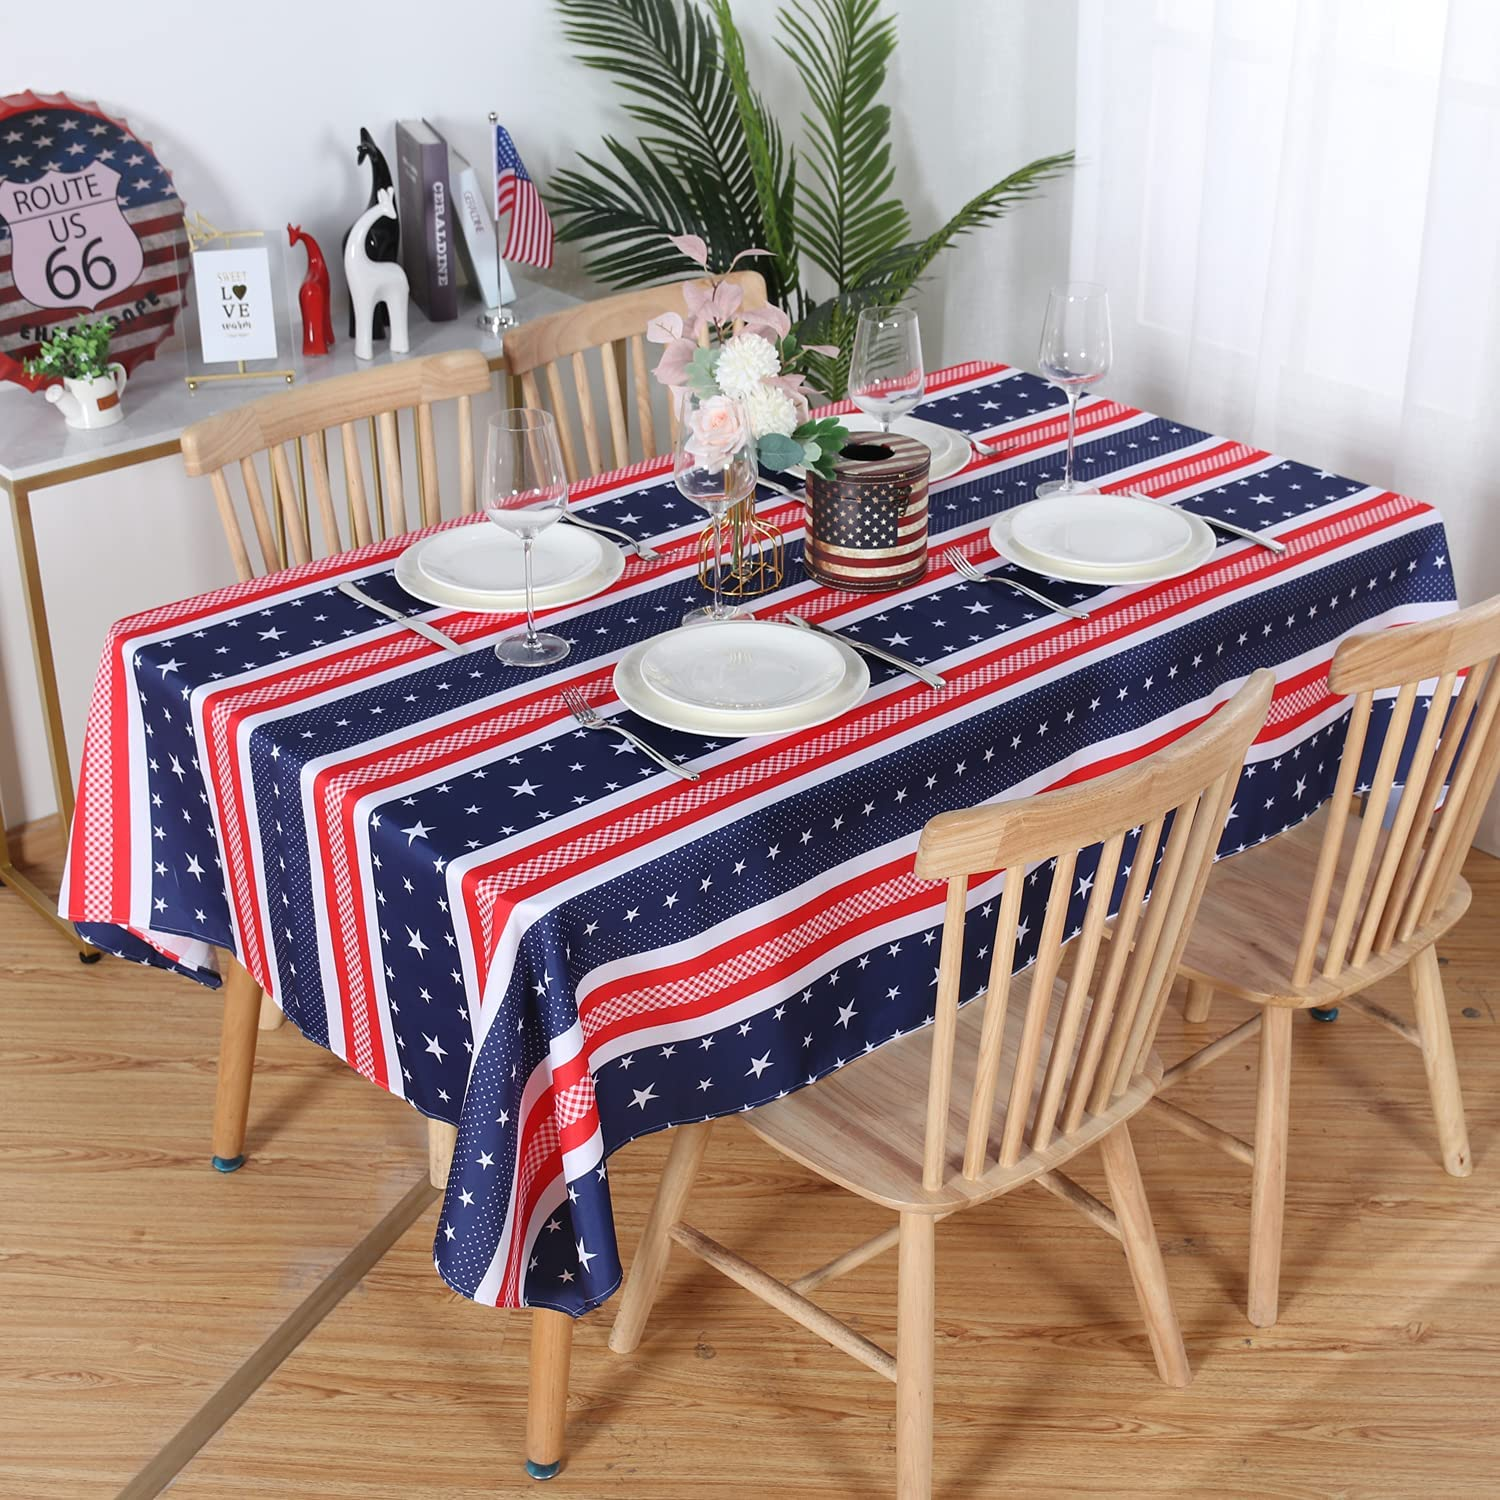 LUSHVIDA American Striped Rectangle Table Cloth, Polyester Stars Patriotic Plaid Tablecloth, Table Cover Protector for July 4th Independence Day Party Supply Decor, 60 x 84 Inch